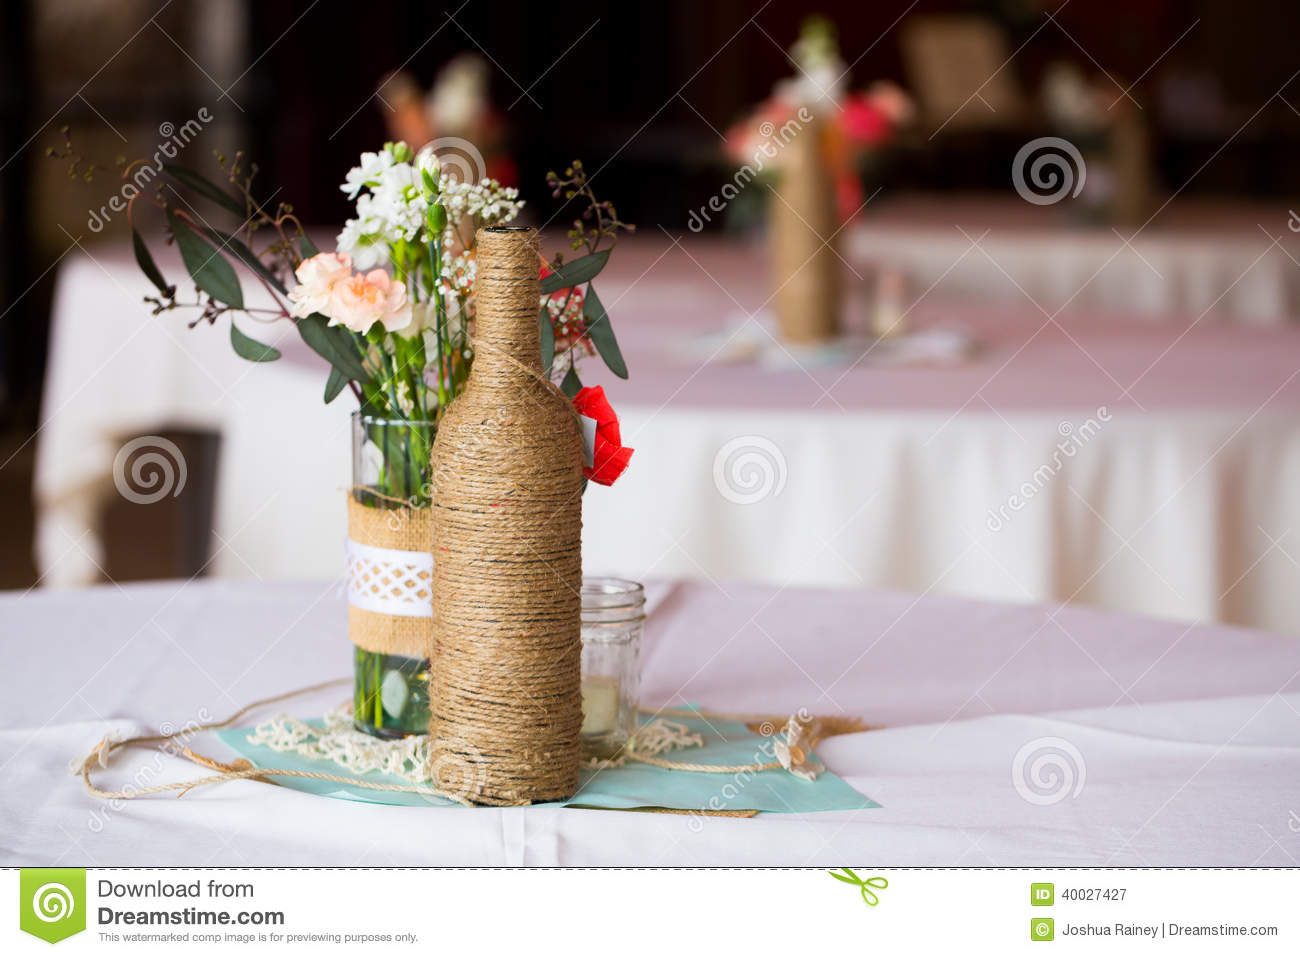 wedding reception table centerpieces stock image image 40027427. Black Bedroom Furniture Sets. Home Design Ideas